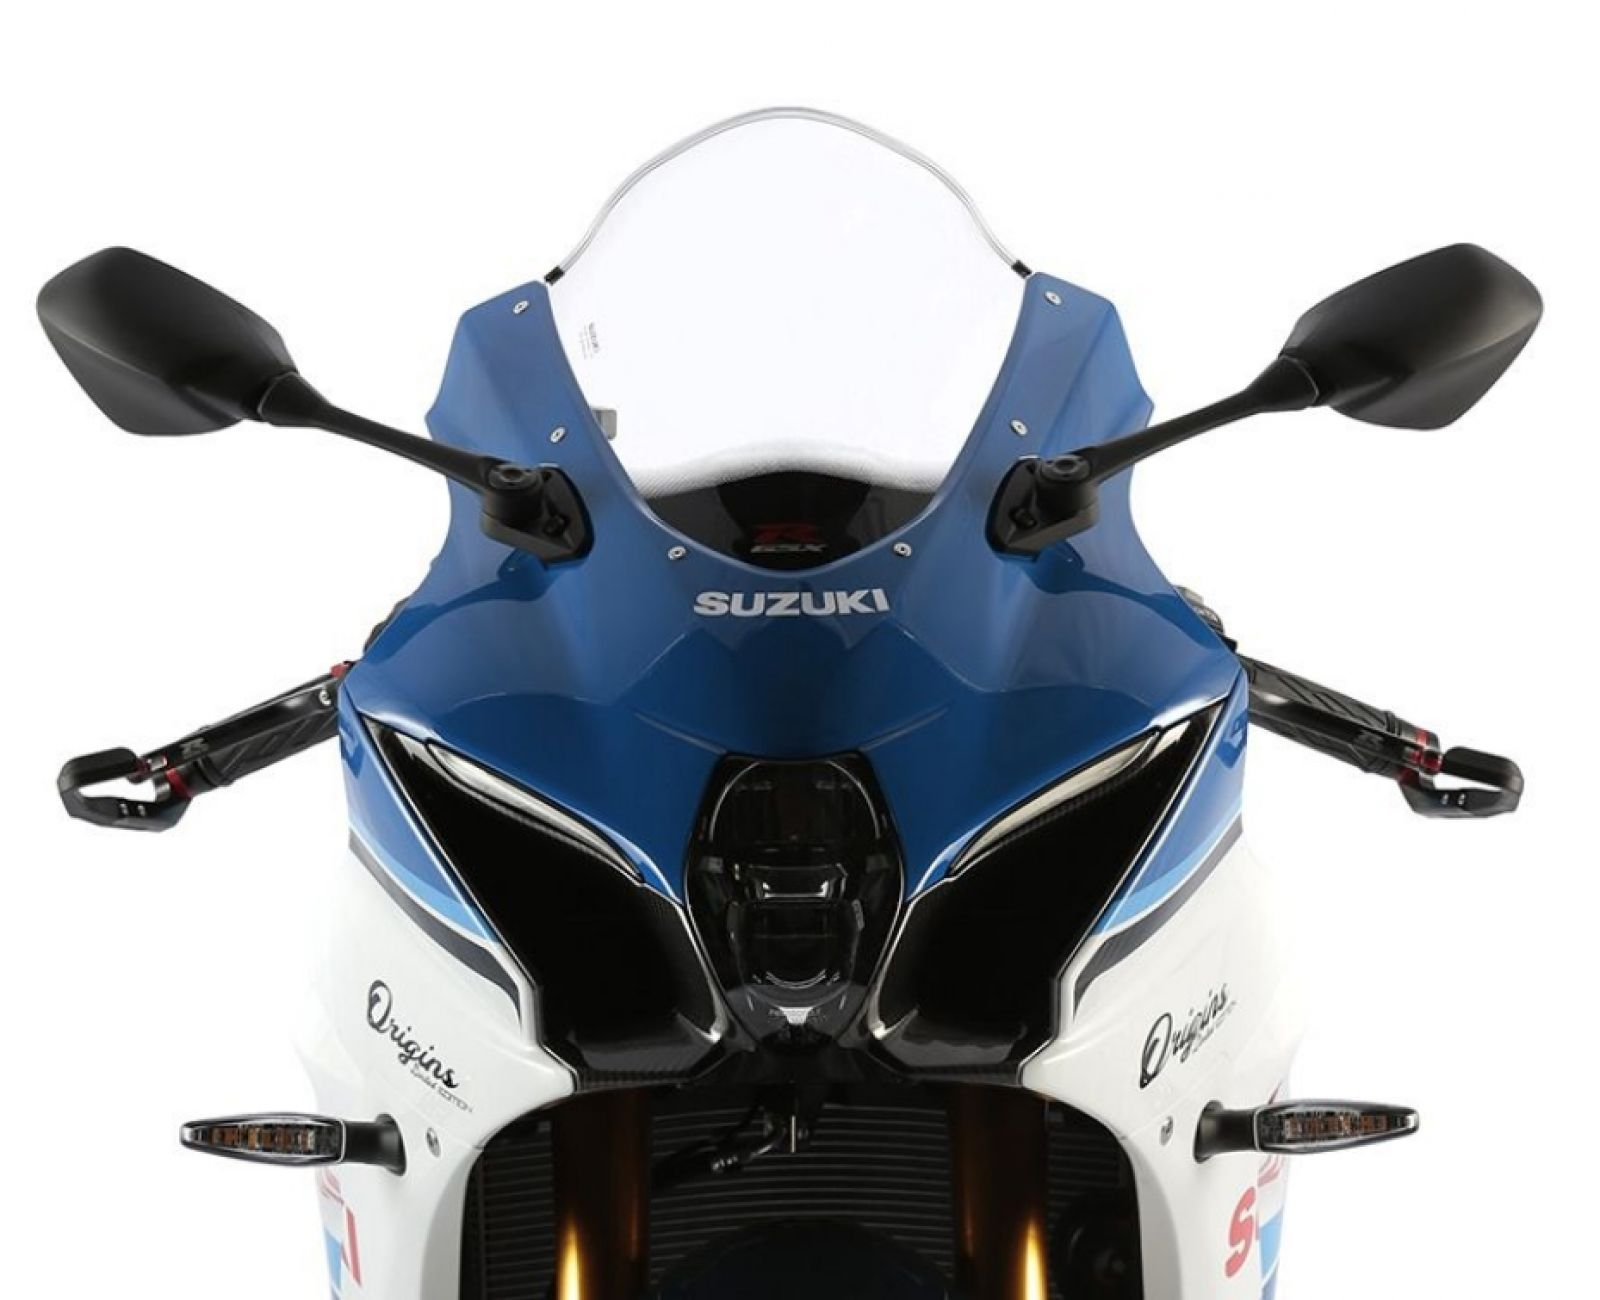 actualité - GSX-R1000R Origins - image d'illustration 7